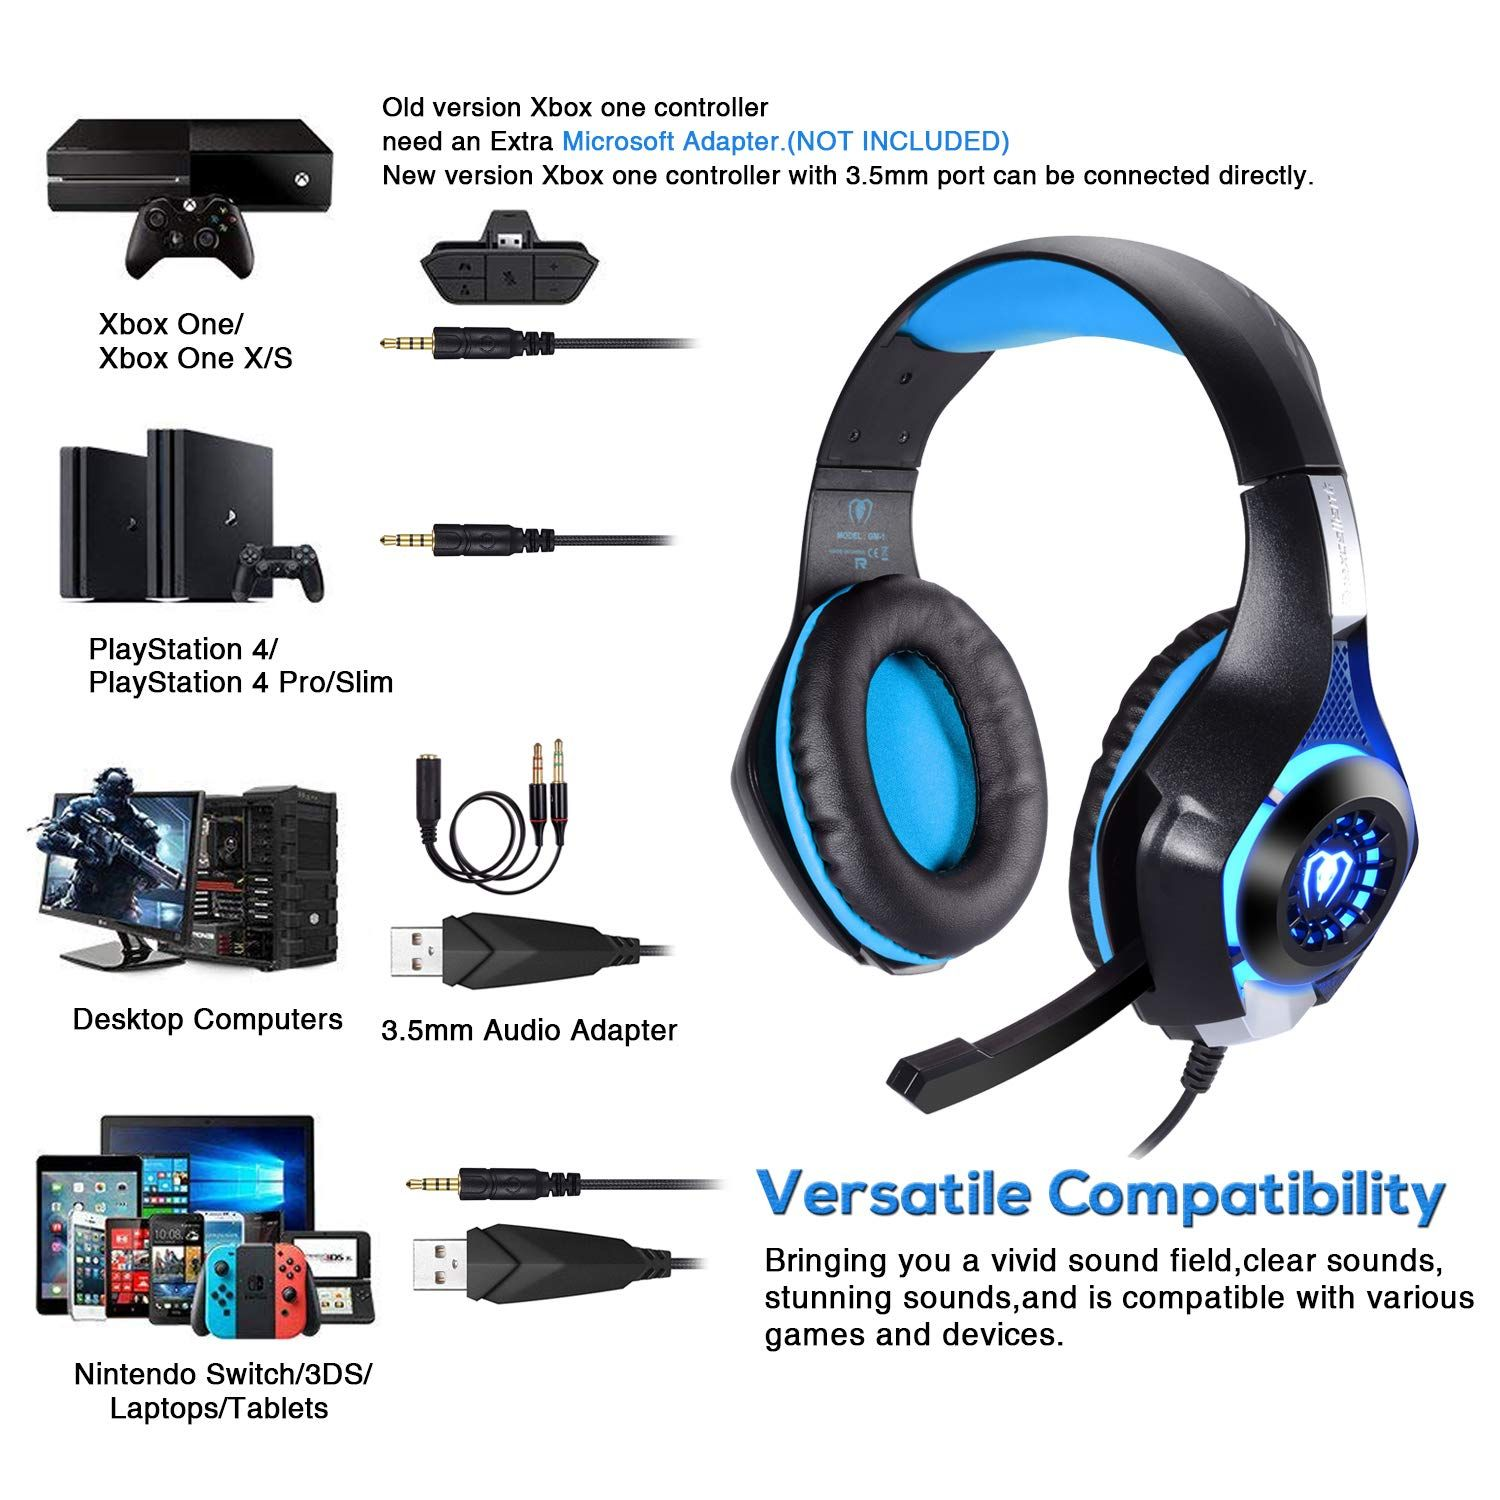 Bluefire Professional 3 5mm Ps4 Gaming Headset Headphone With Mic And Led Lights For Playstation 4 Xbox One Laptop Ps4 Gaming Headset Headset Gaming Headset